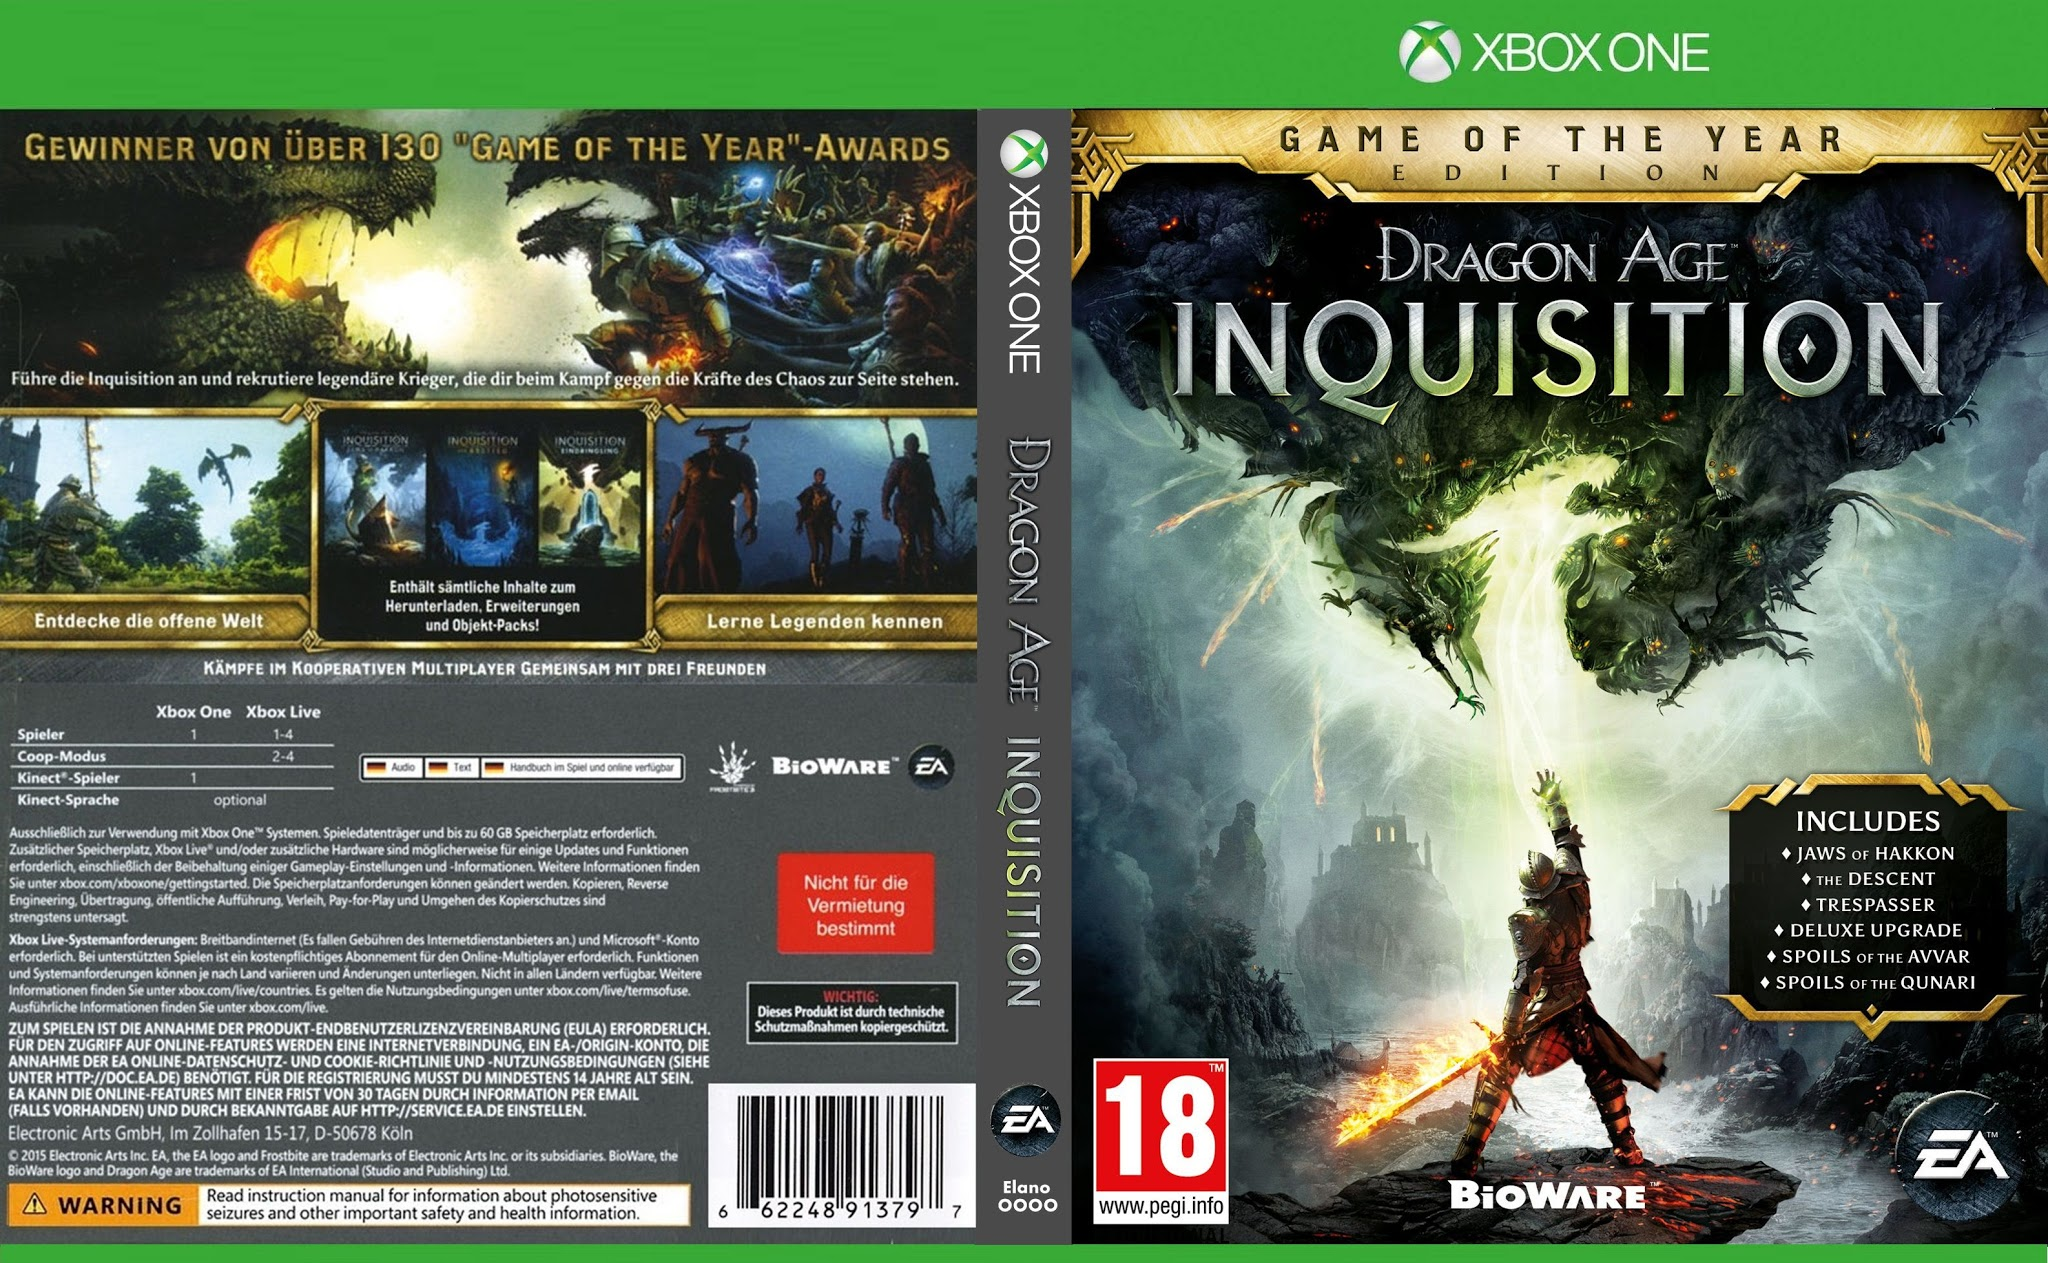 Dragon Age: Inquisition - Wikipedia